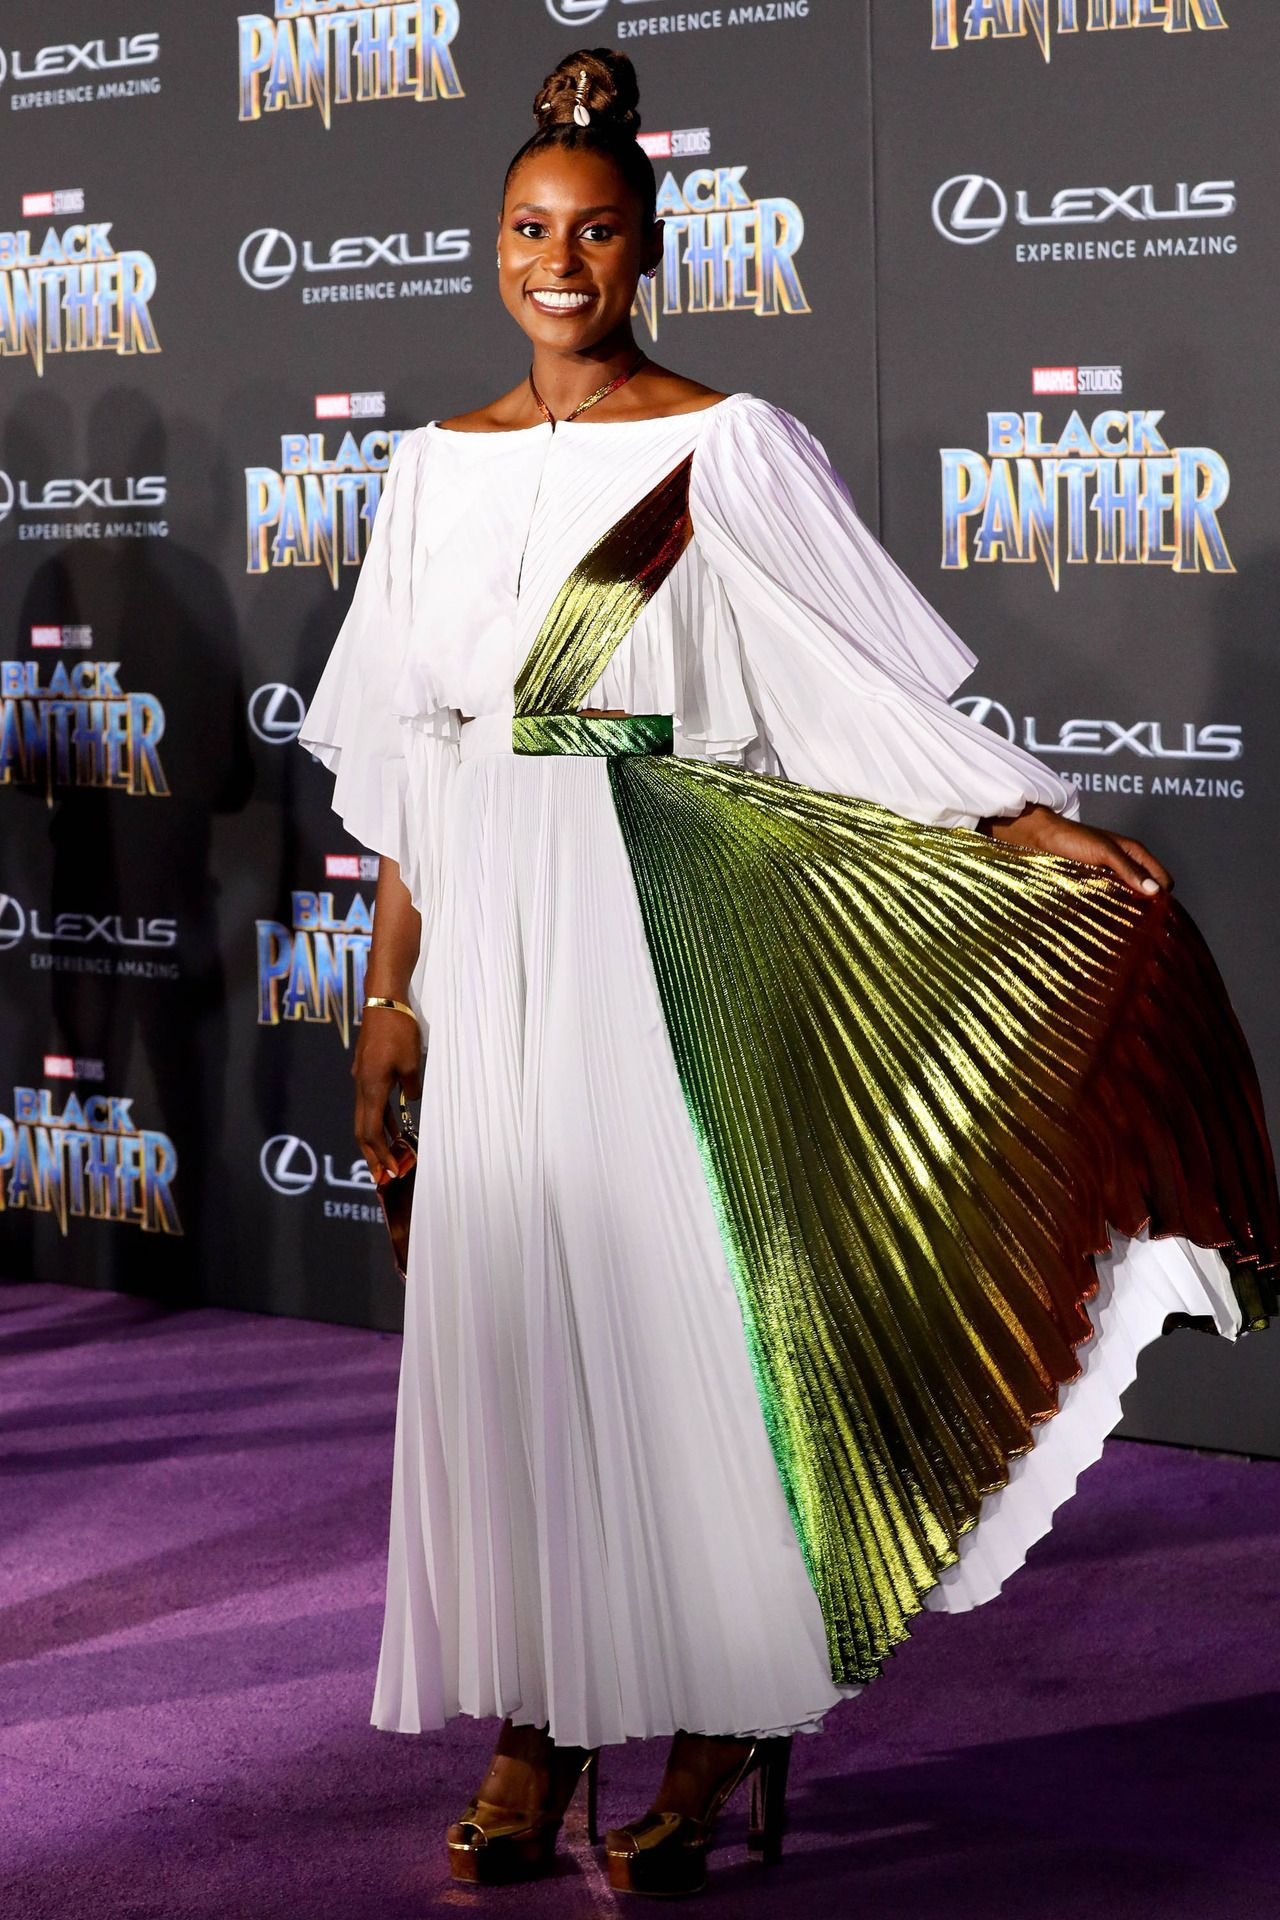 The Walking Dead Teppich Issa Rae Attends The Premiere Of Disney And Marvel S Black